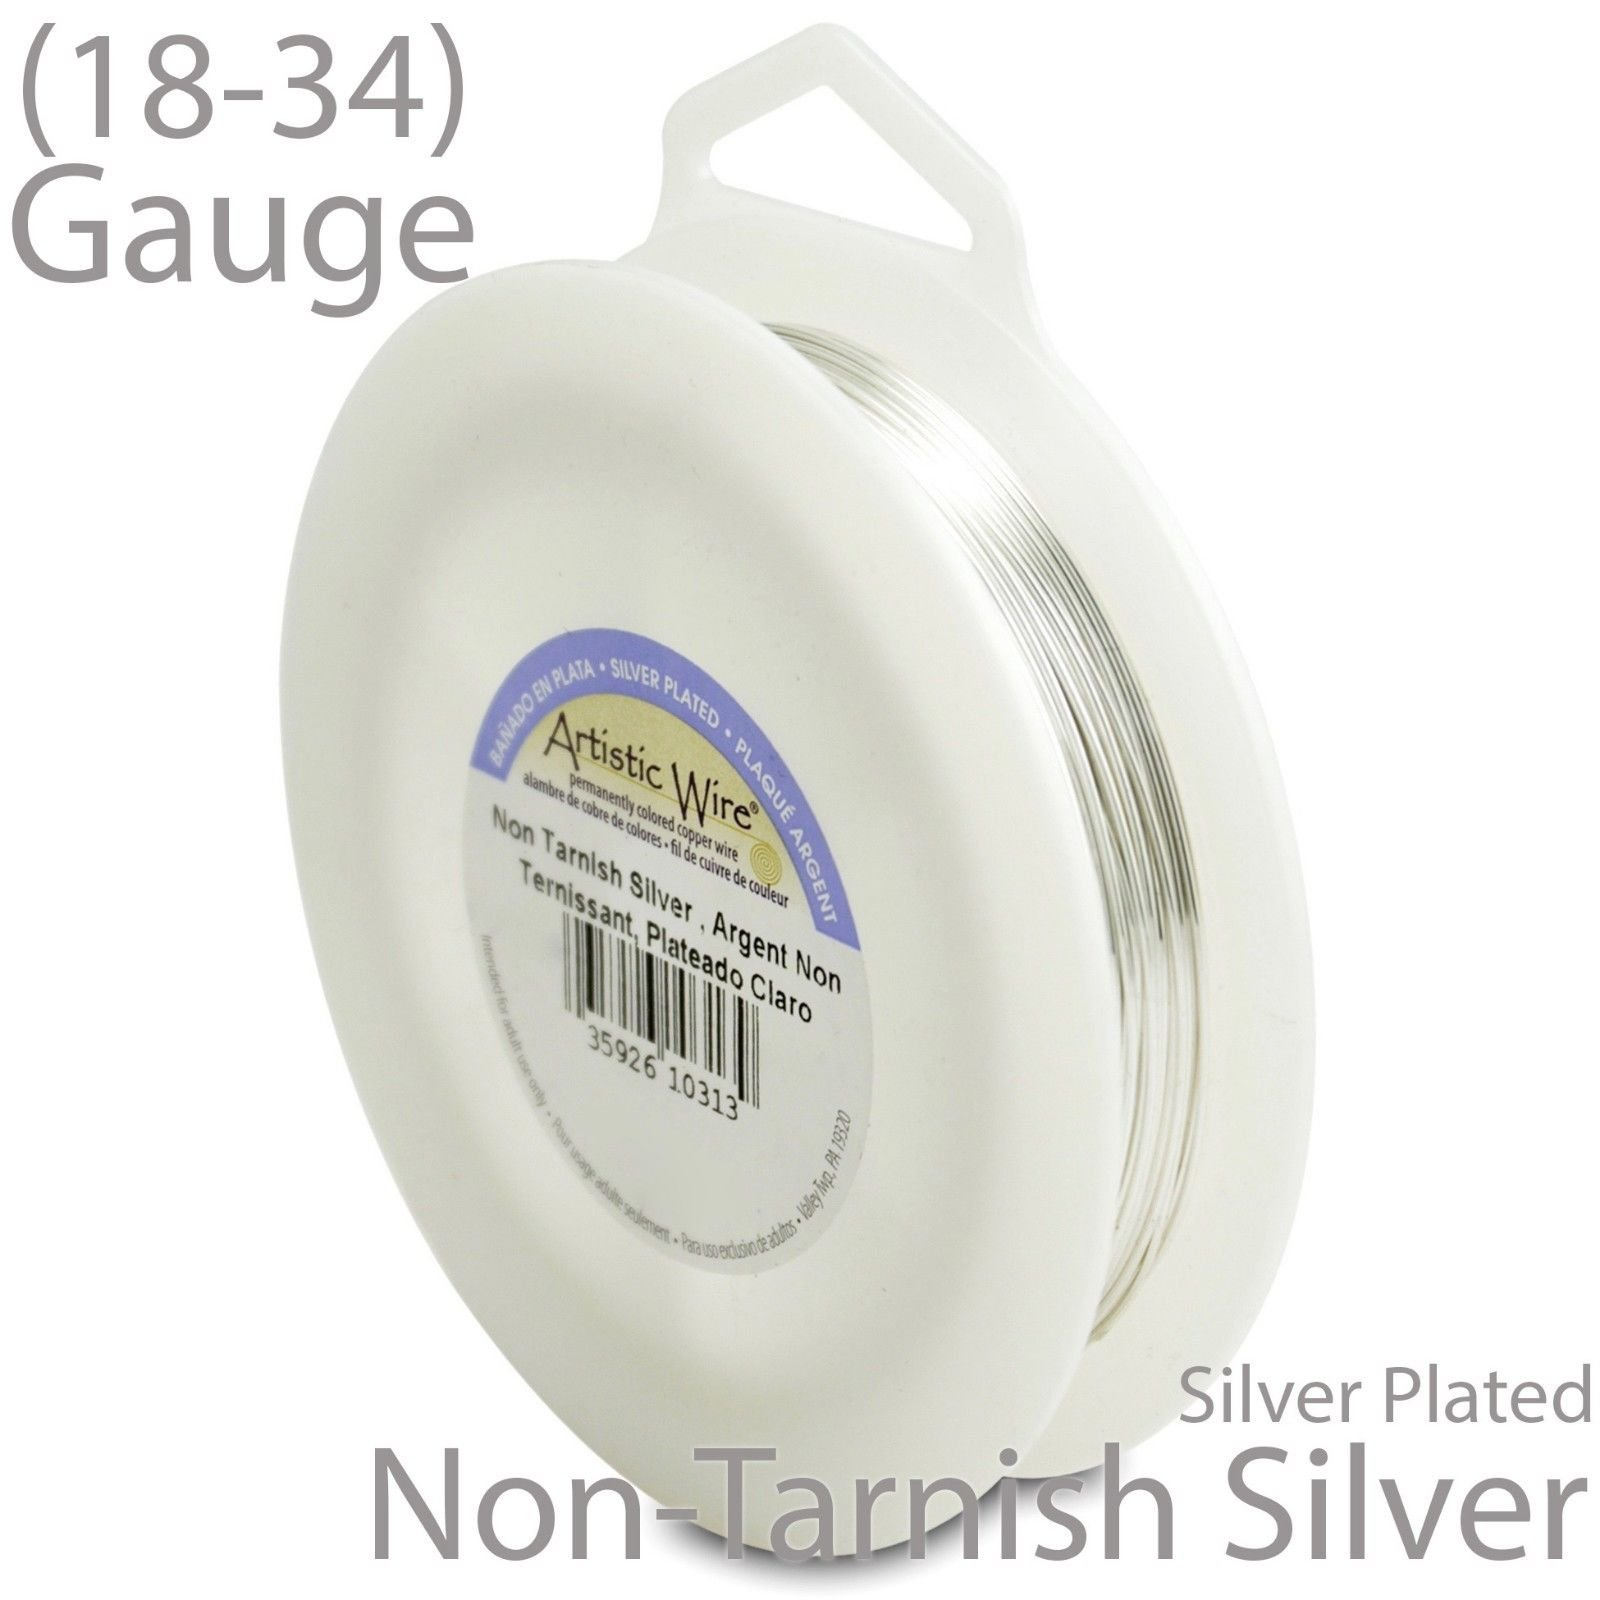 Silver-Tarnish-Resistant-Silver-Plated-Artistic-Craft-Wire-1-4lb-Spool